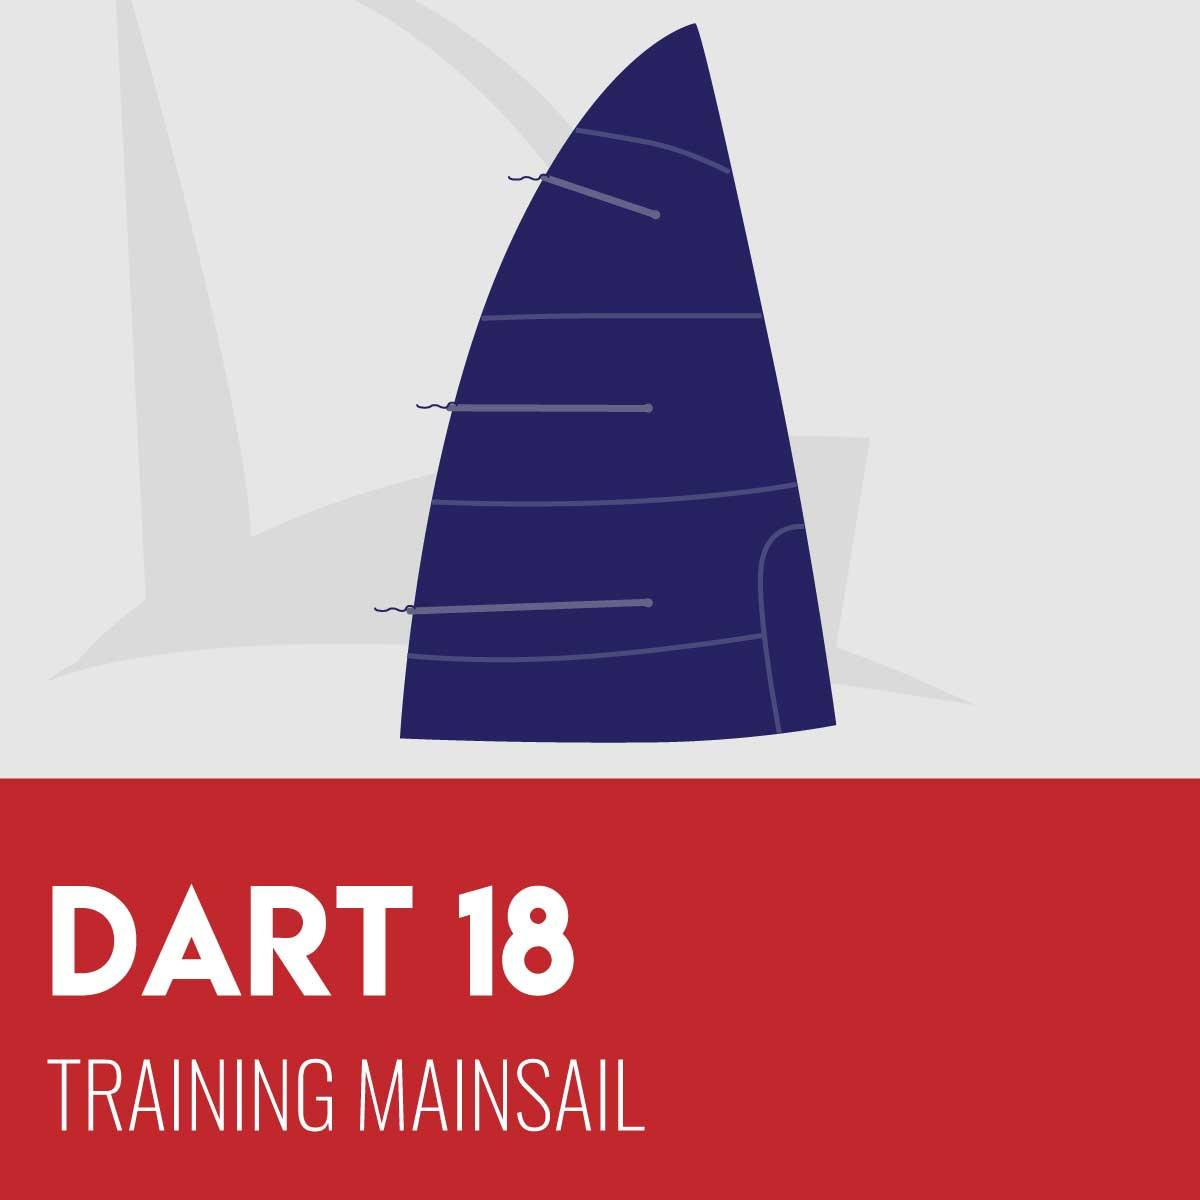 Dart 18 Training Mainsail